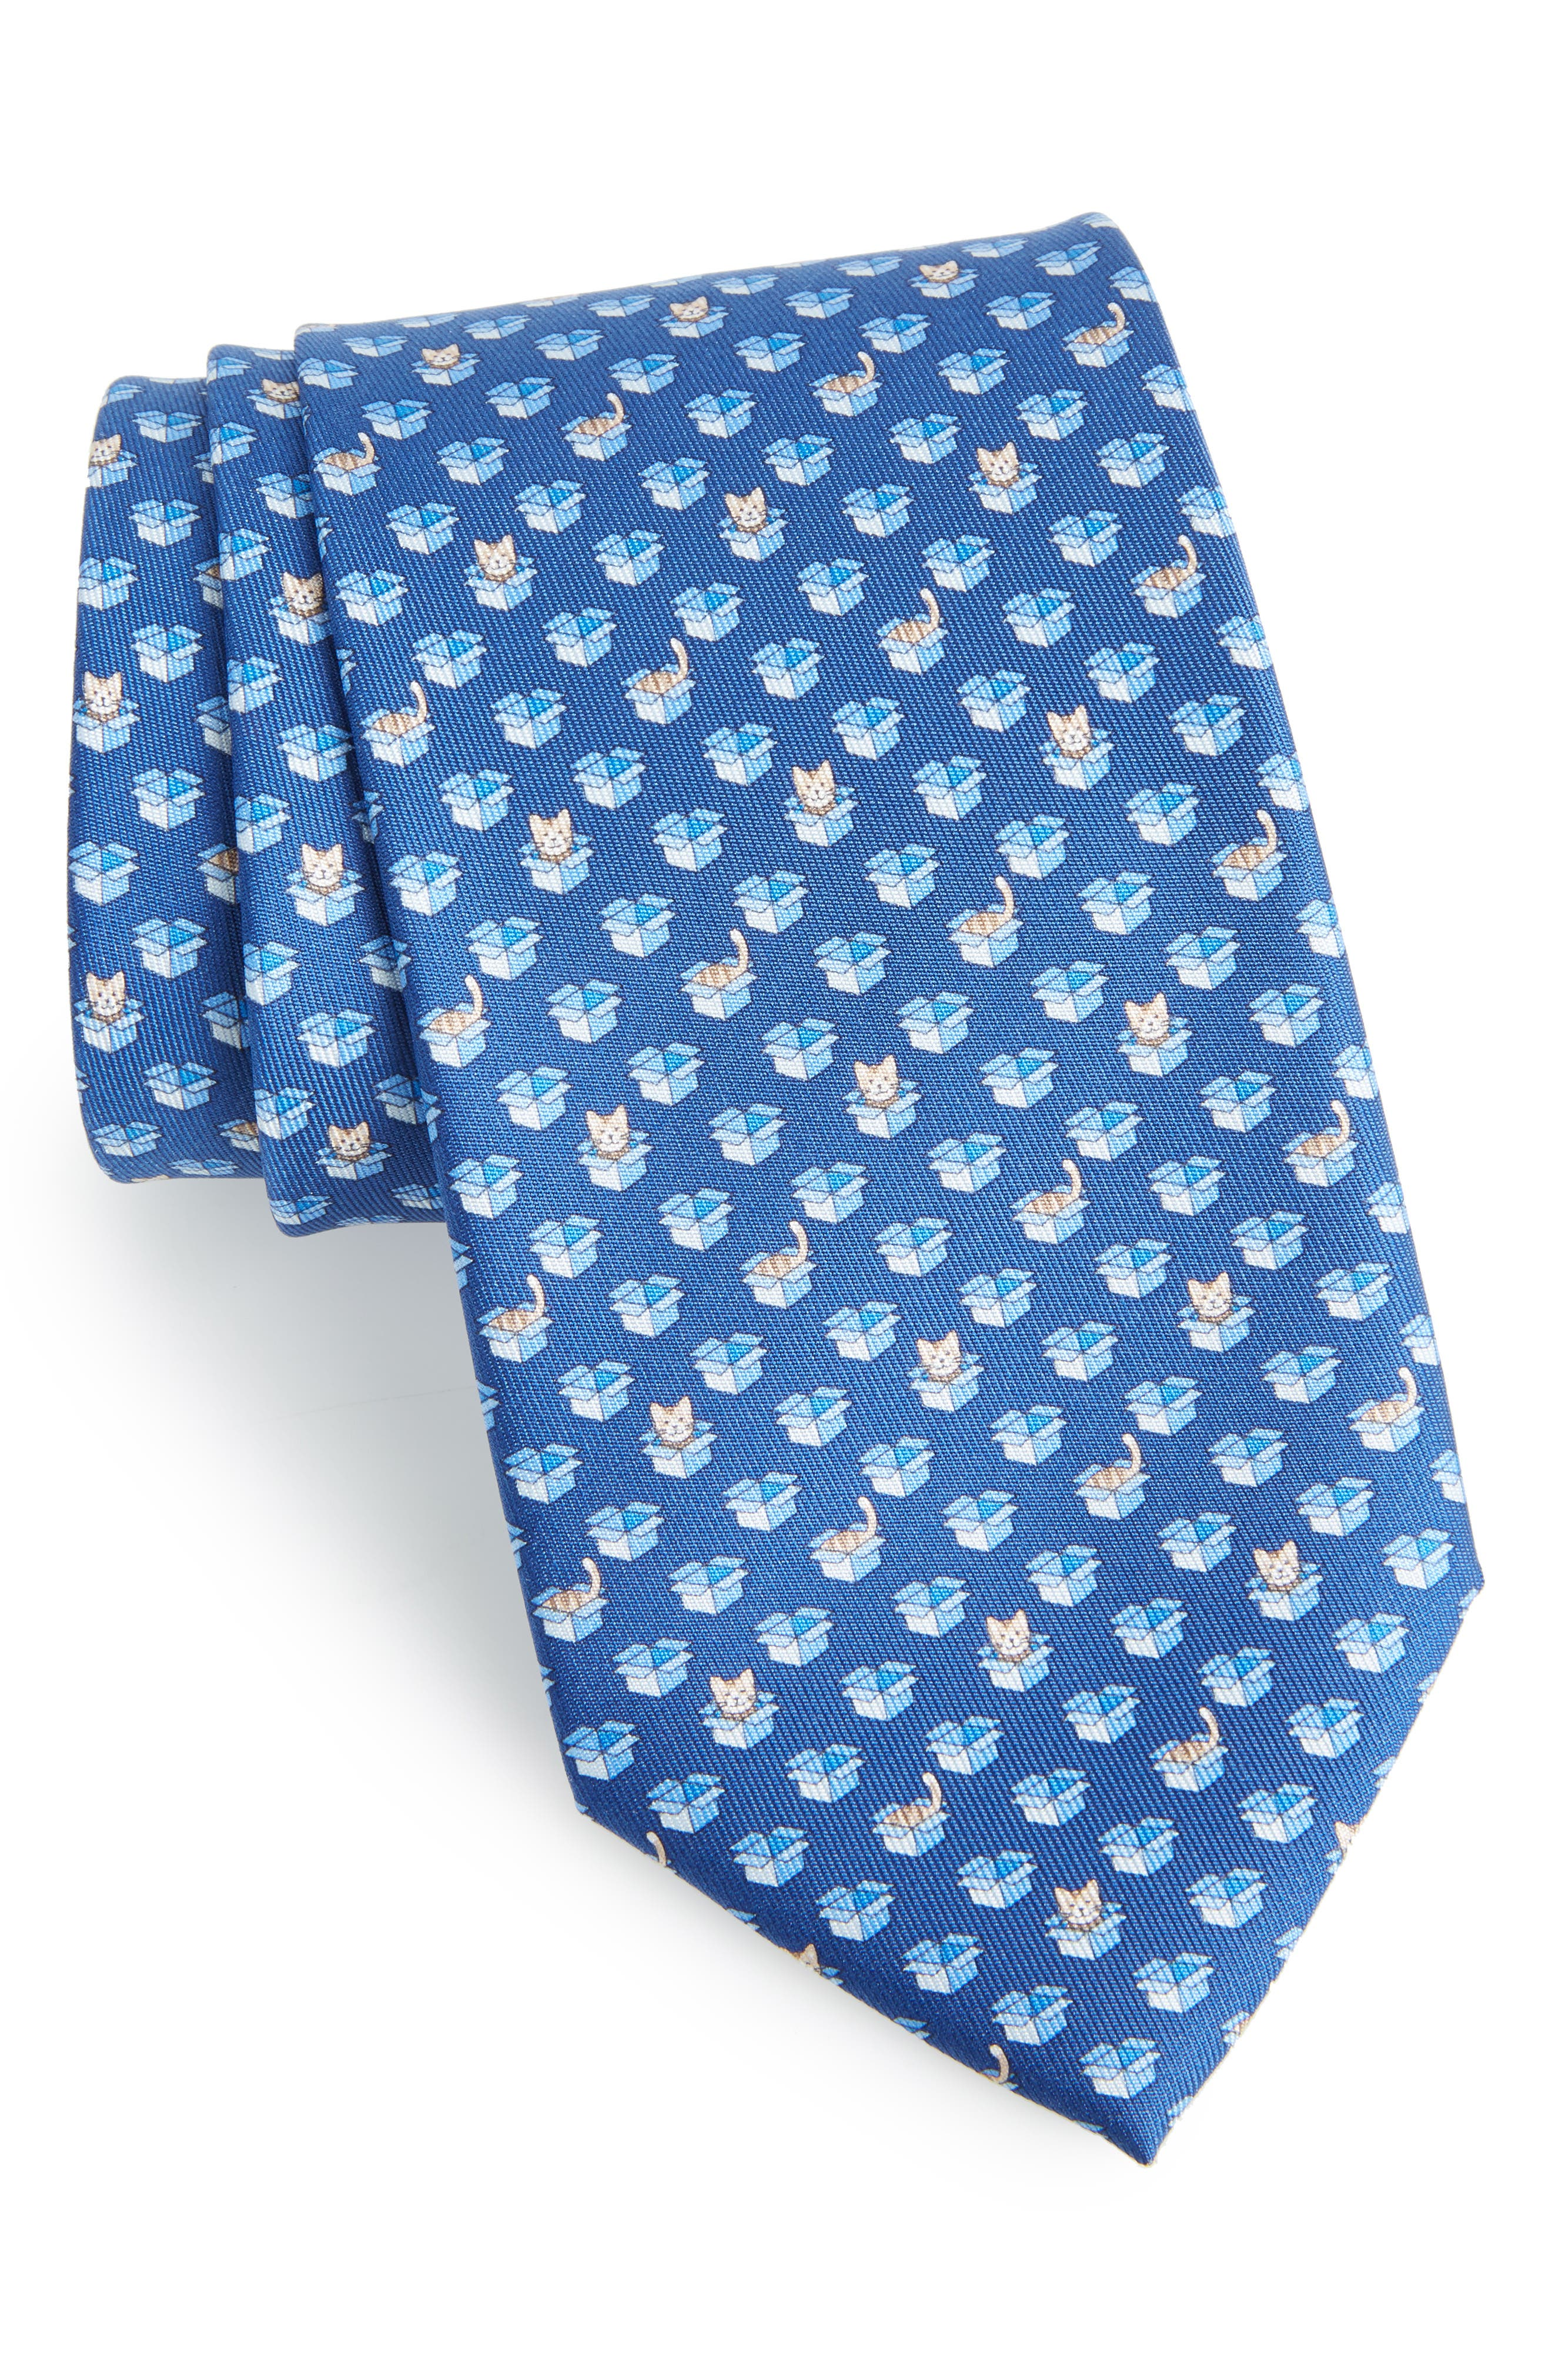 Felix Print Silk Tie,                             Main thumbnail 1, color,                             BLUE